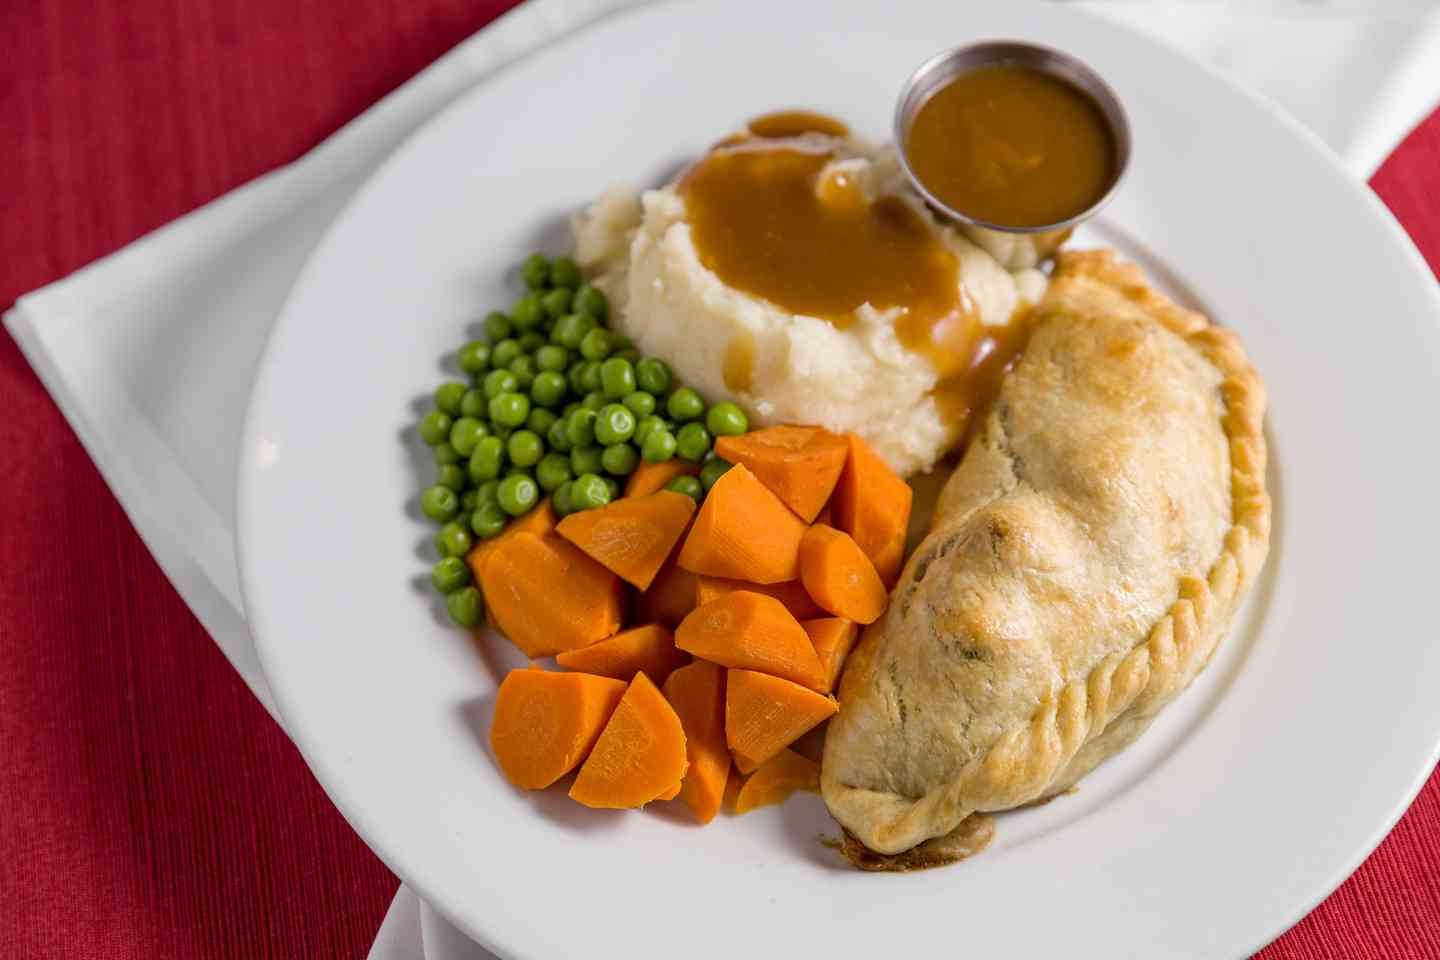 Collingswood's Cornish Pasty